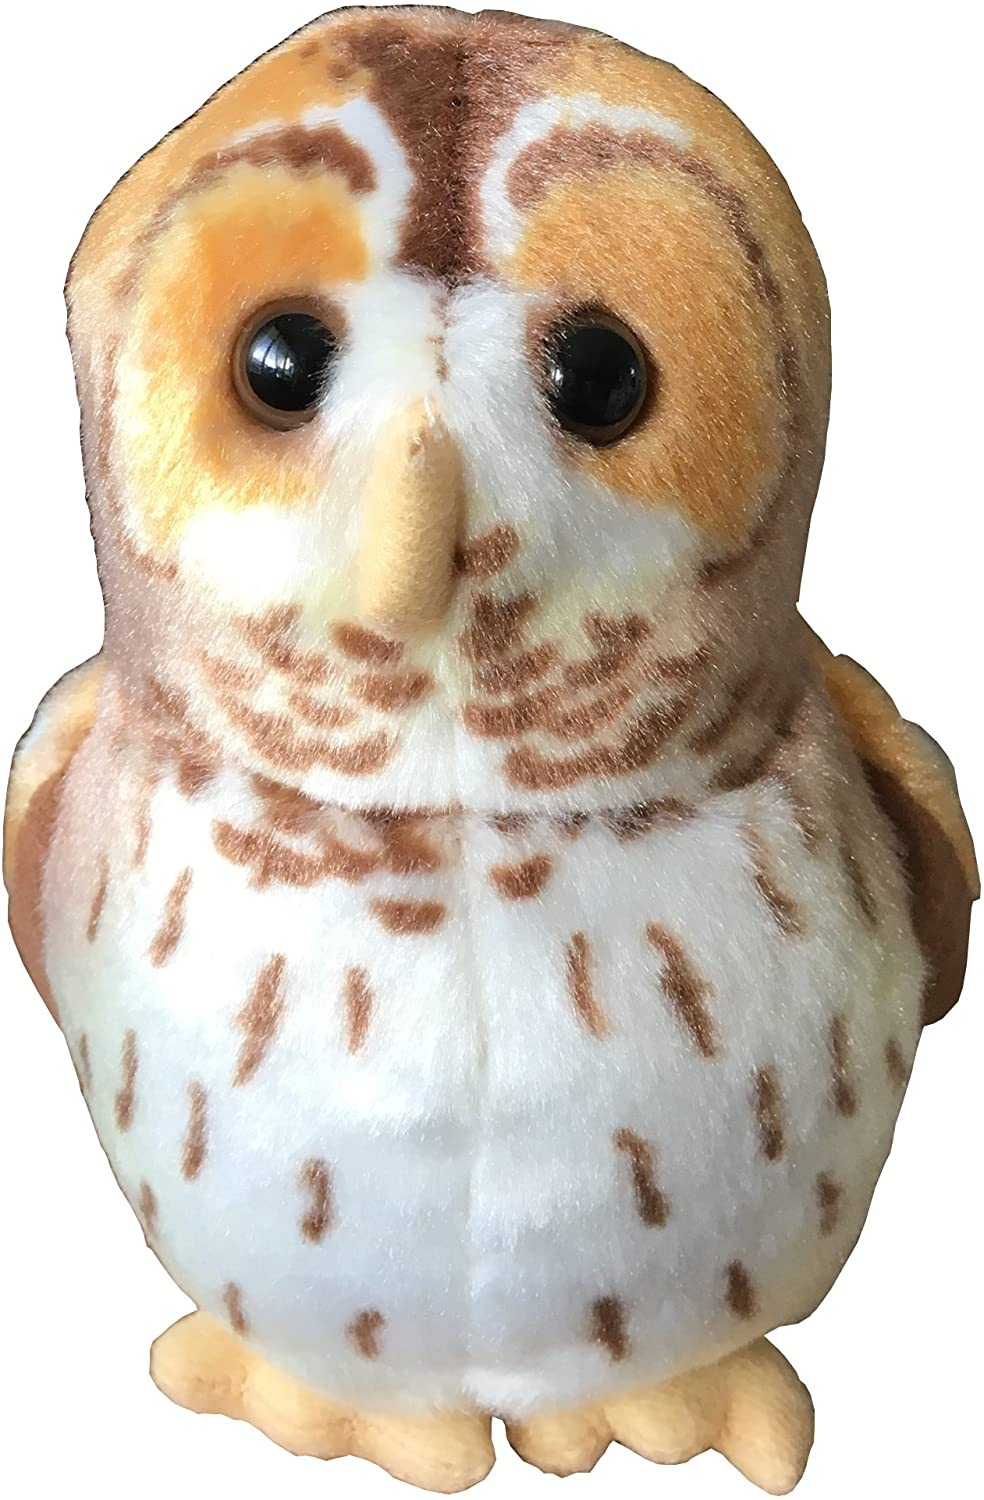 Owl soft toy that 'hoots'.